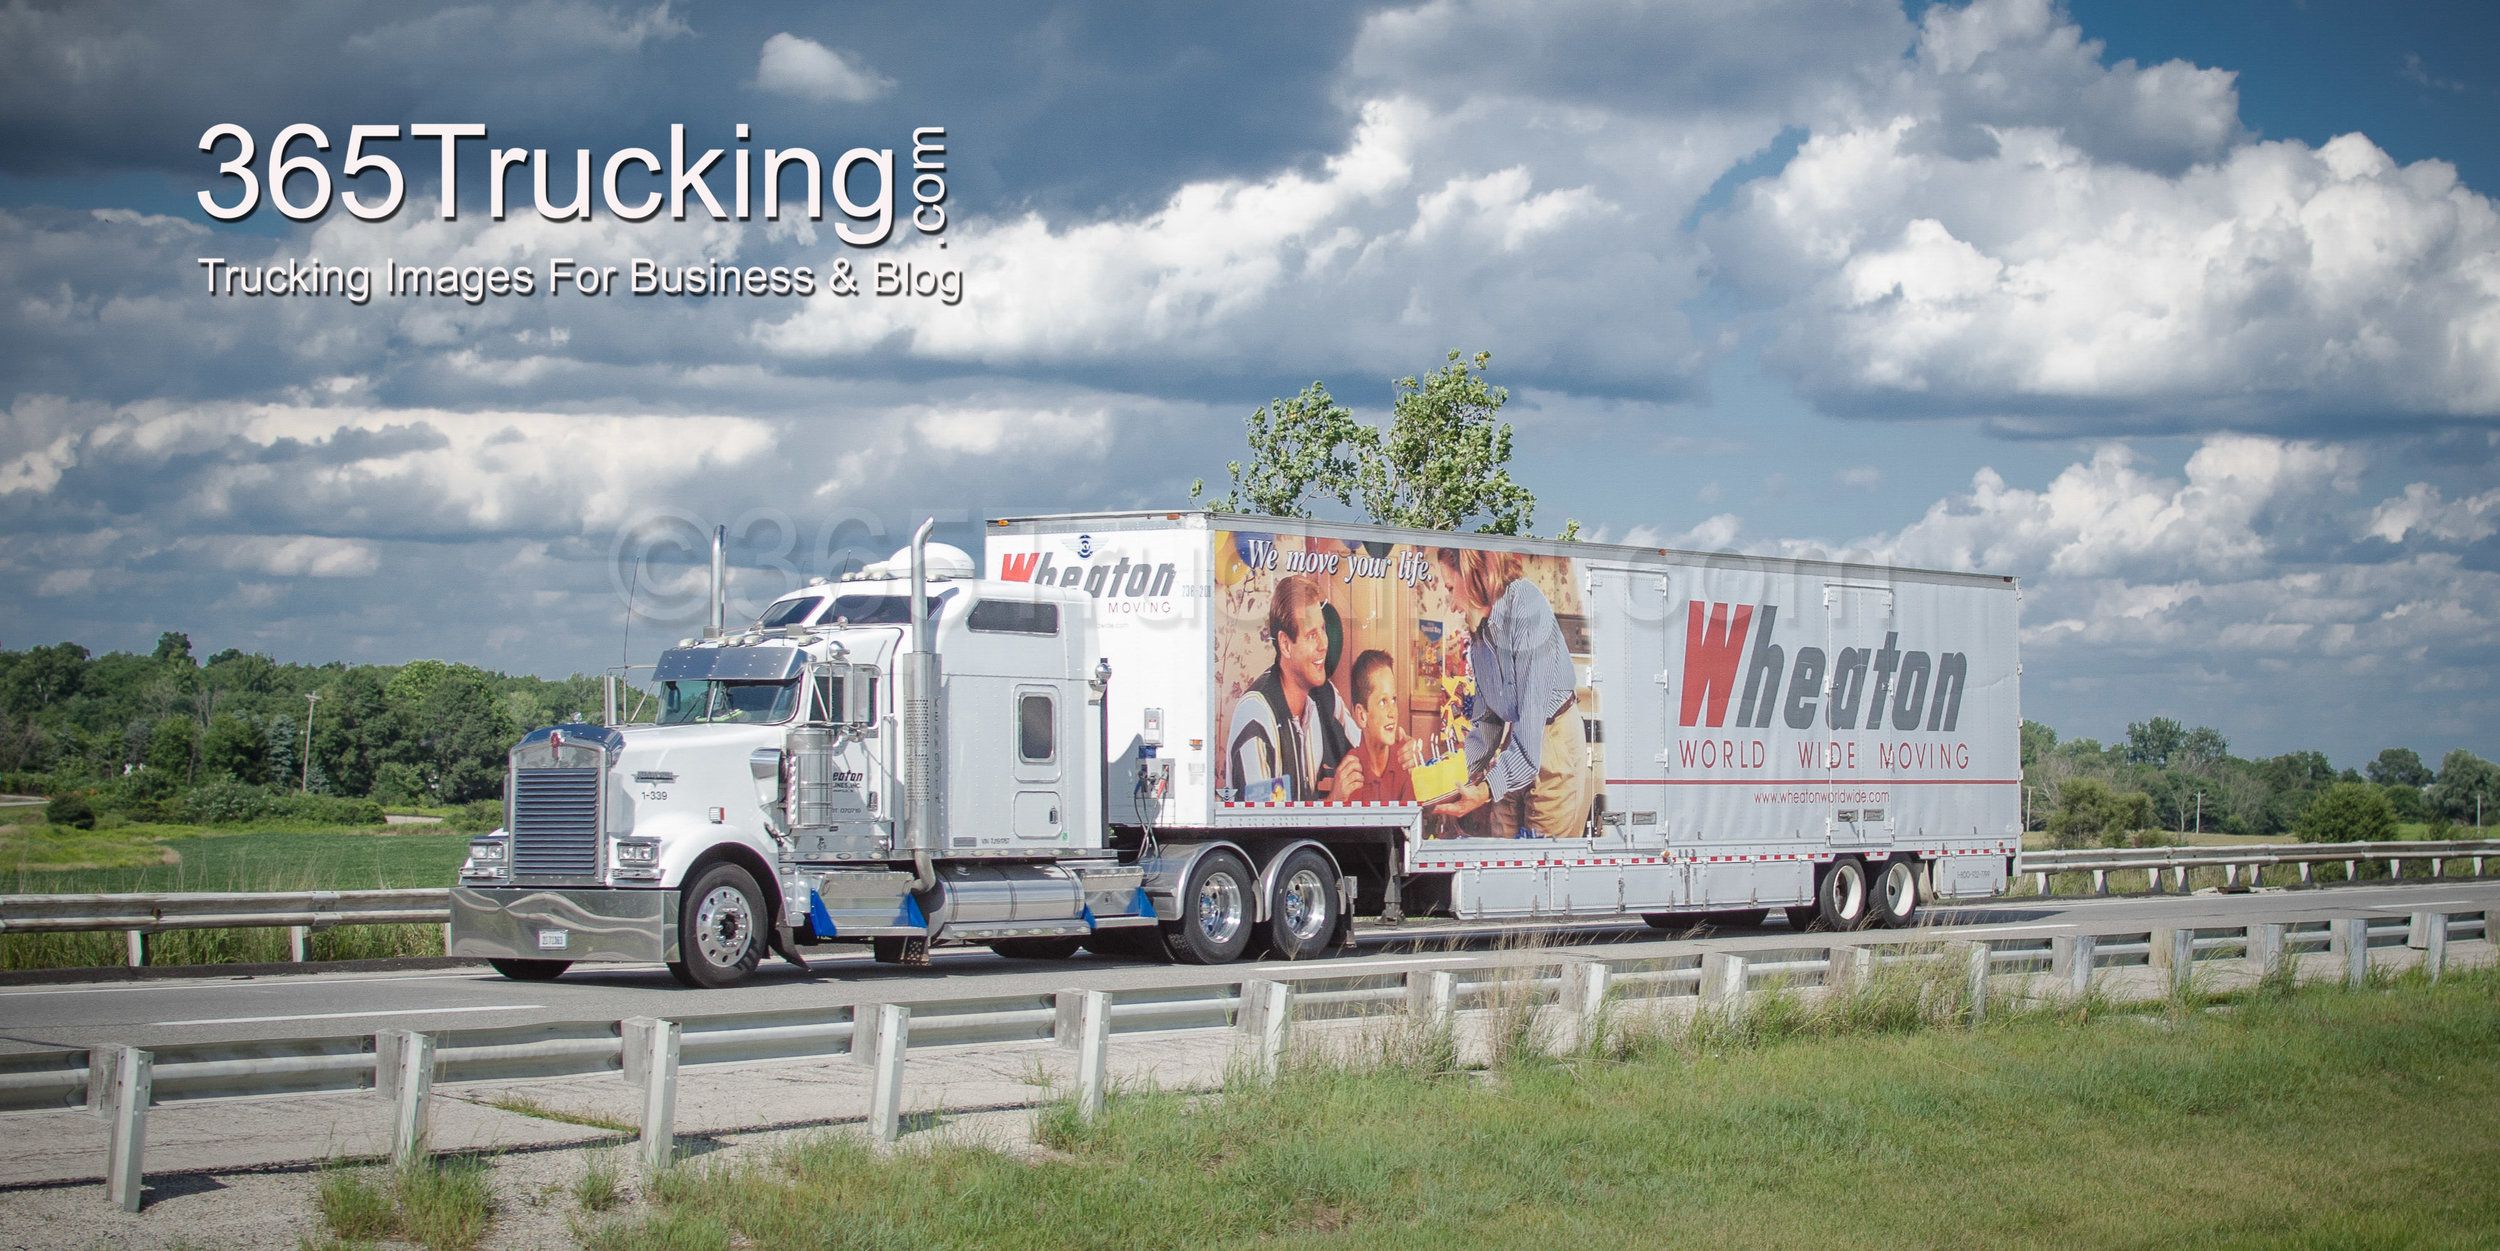 Click Here for More Trucking Images at TruckStockImages.com